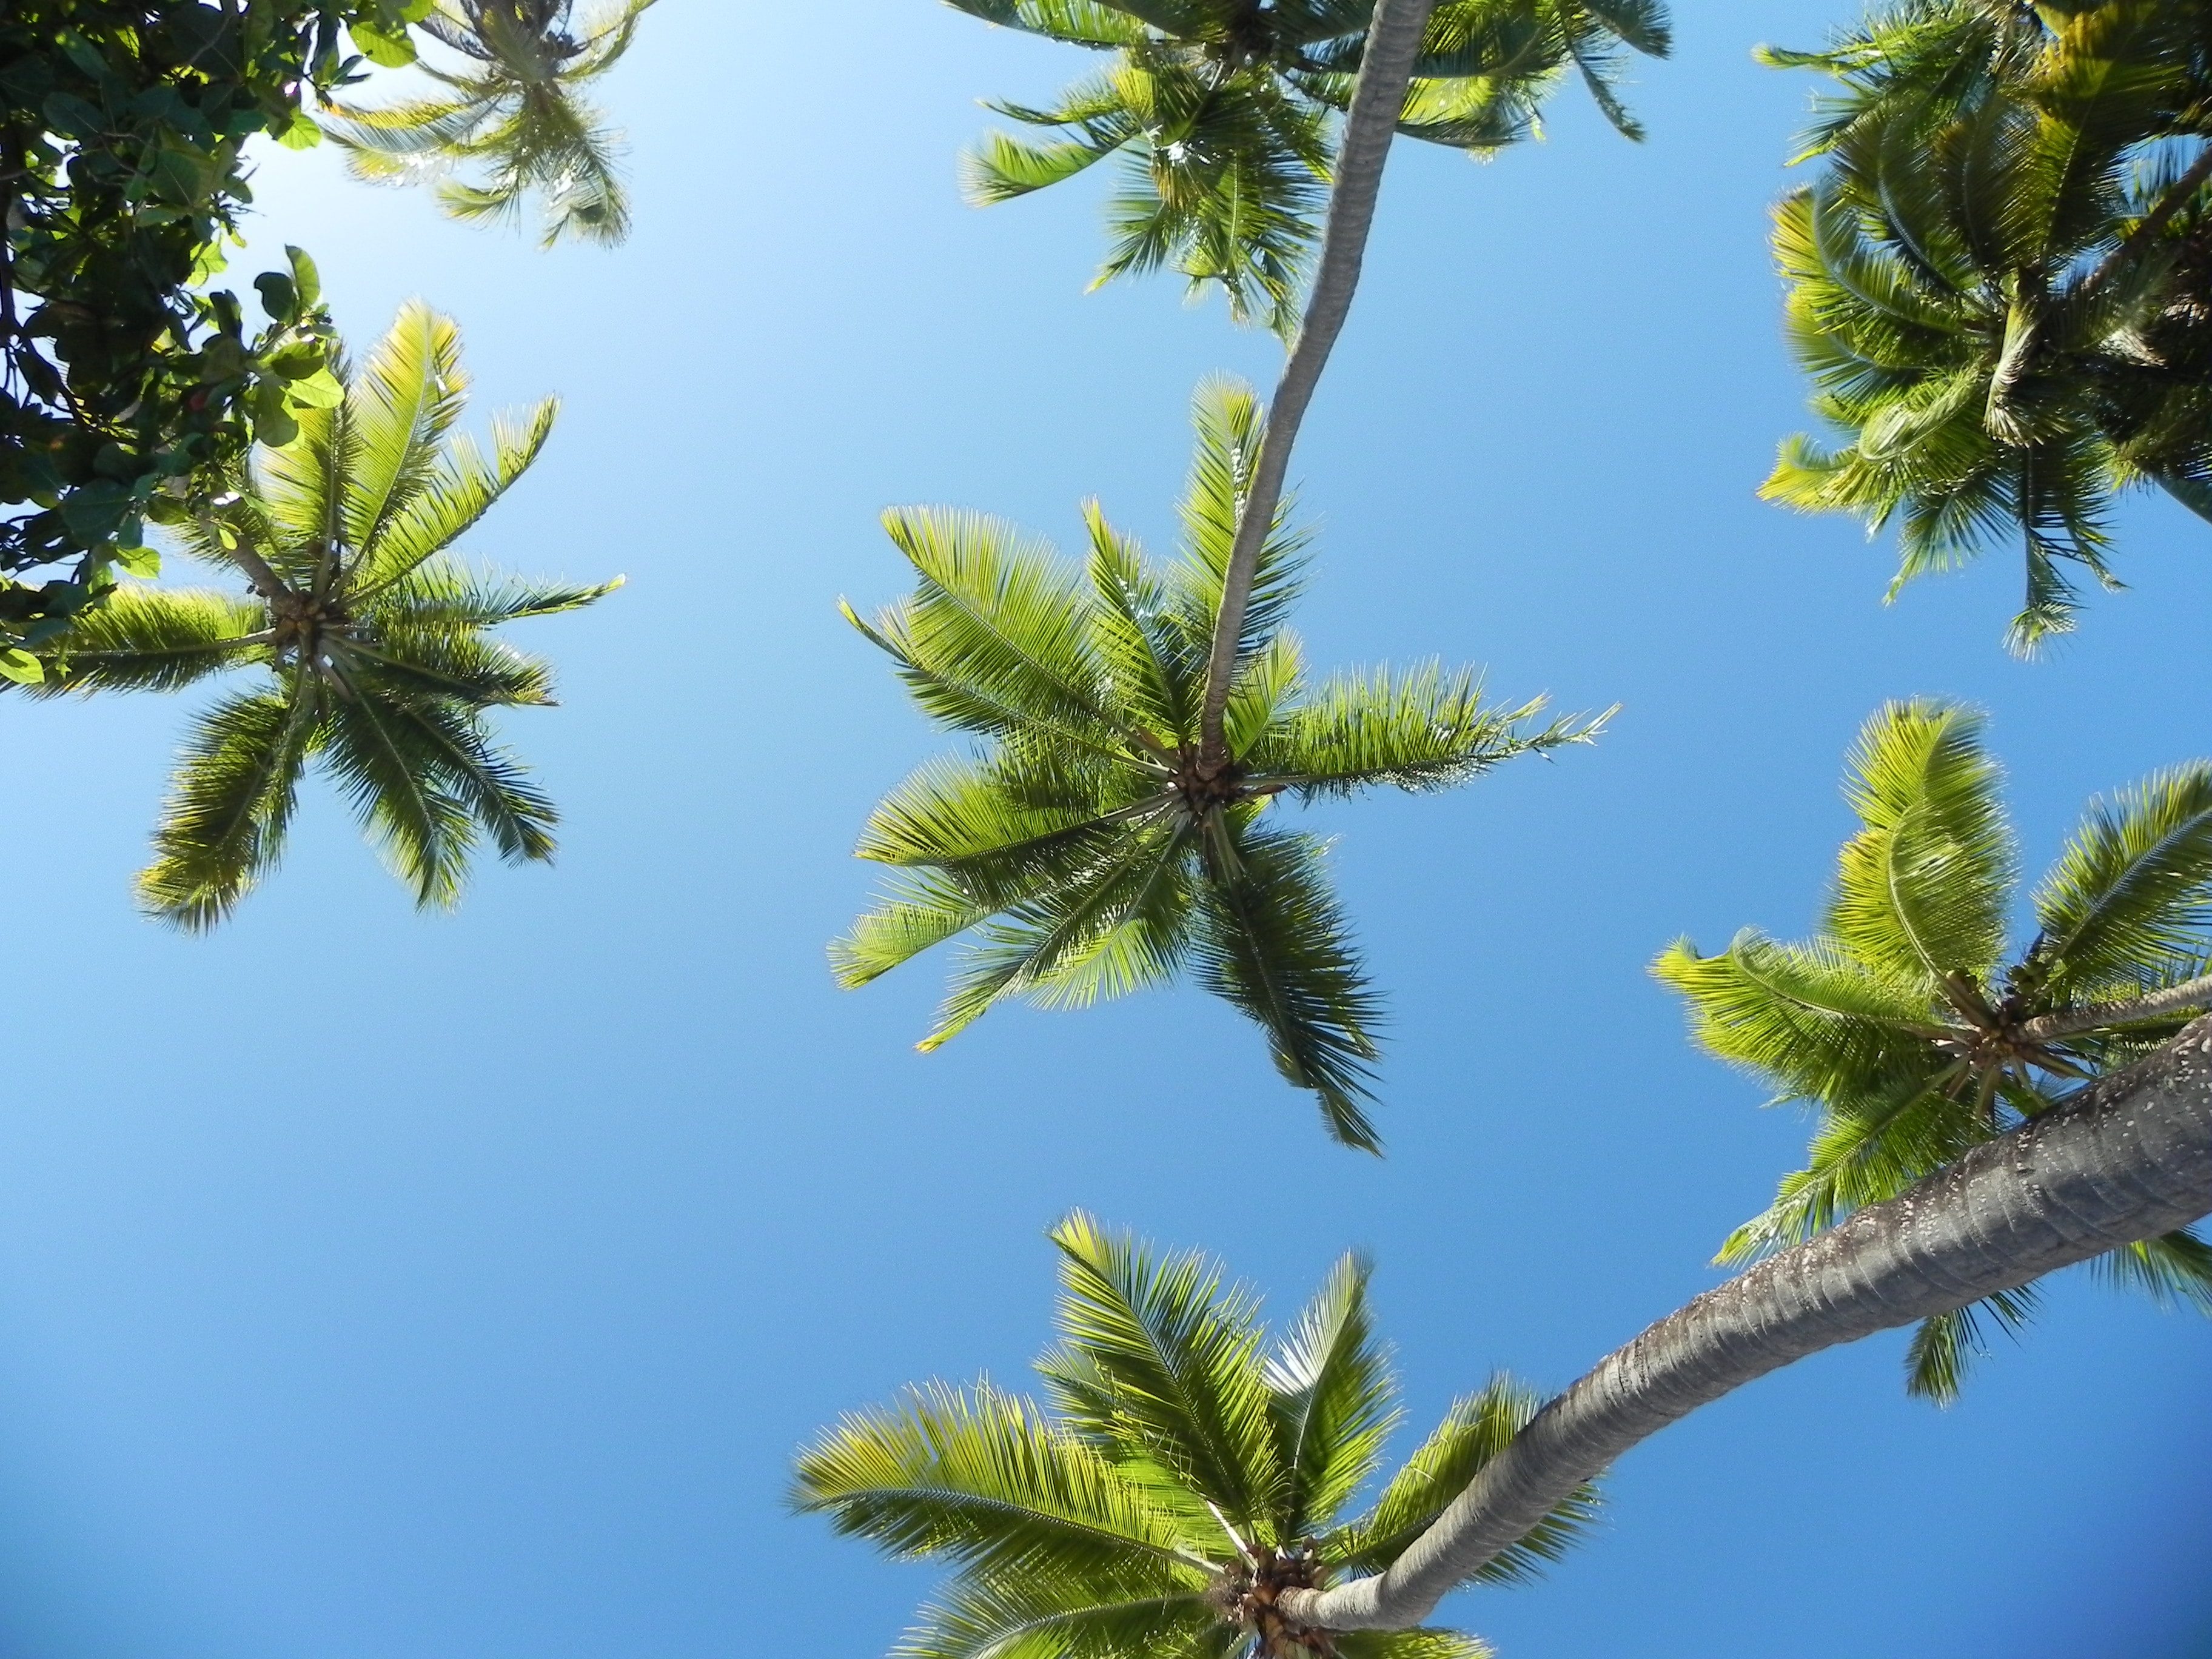 worm's eye view of coconut palm trees